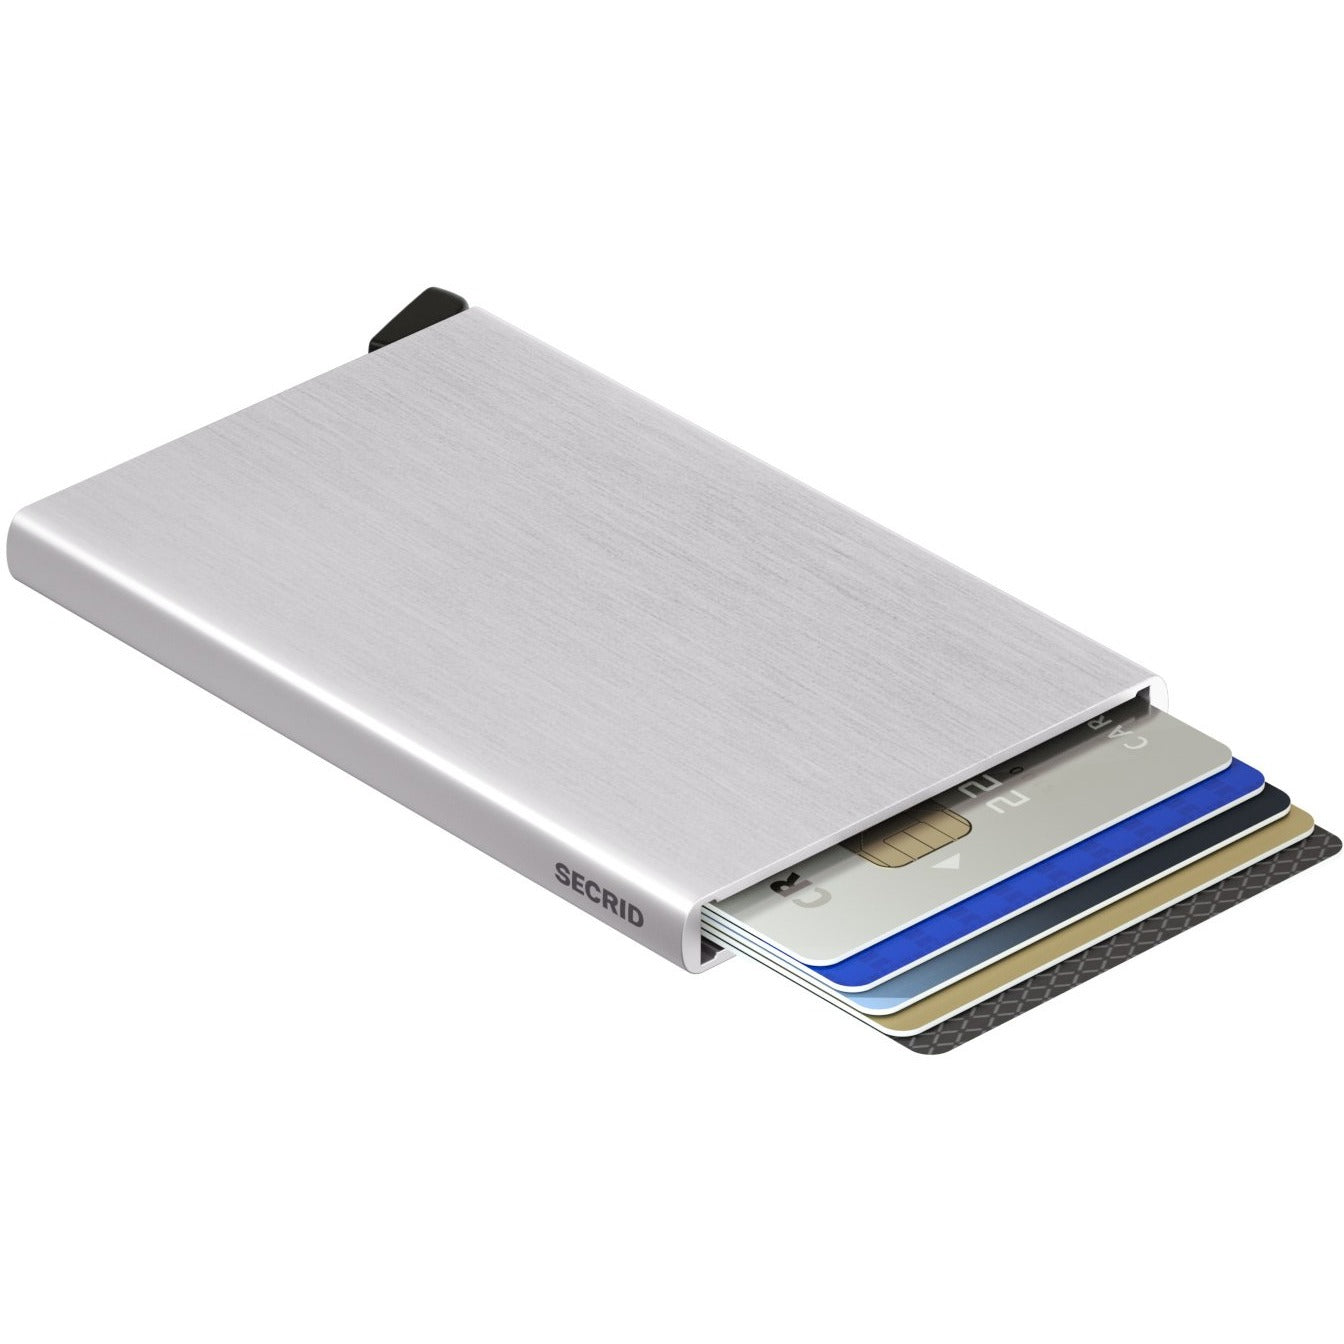 Secrid Cardprotector, Silver Brushed